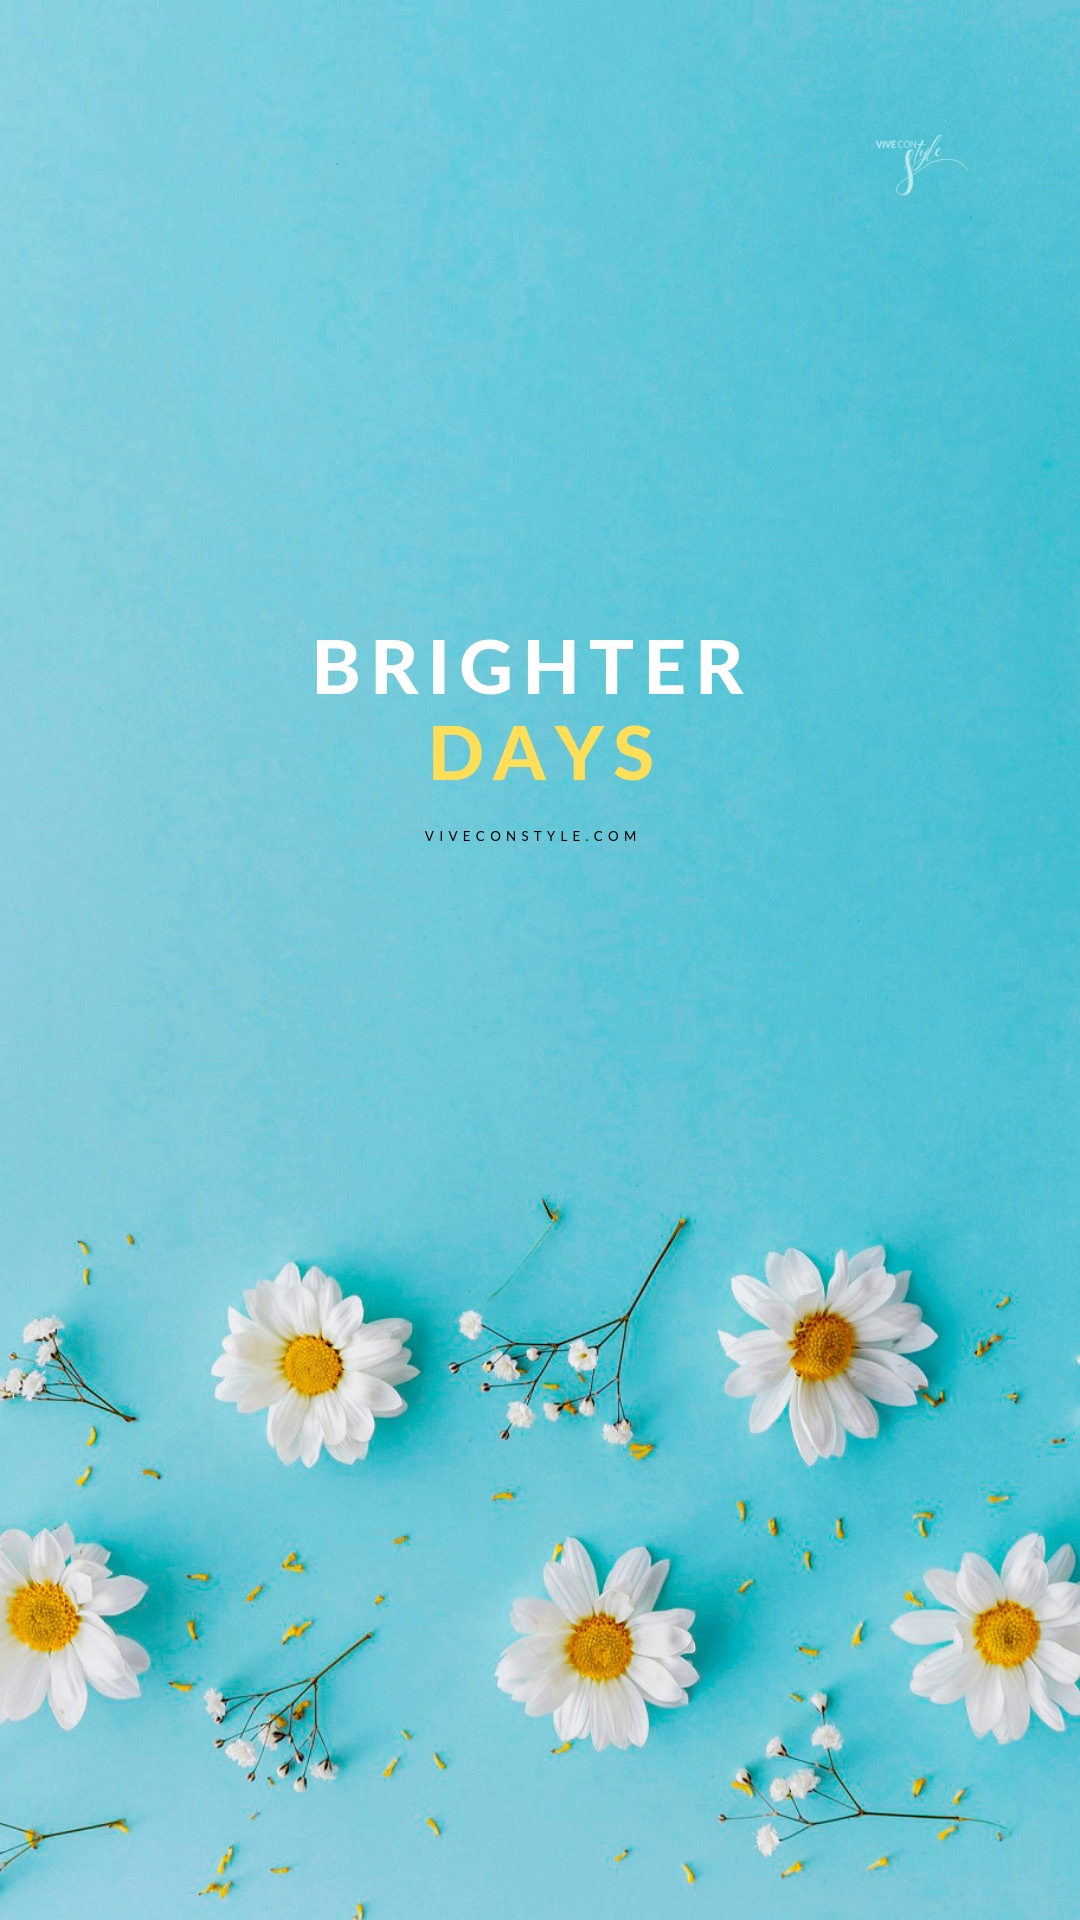 Brighter Days Spring Mobile Wallpaper Vive Con Style